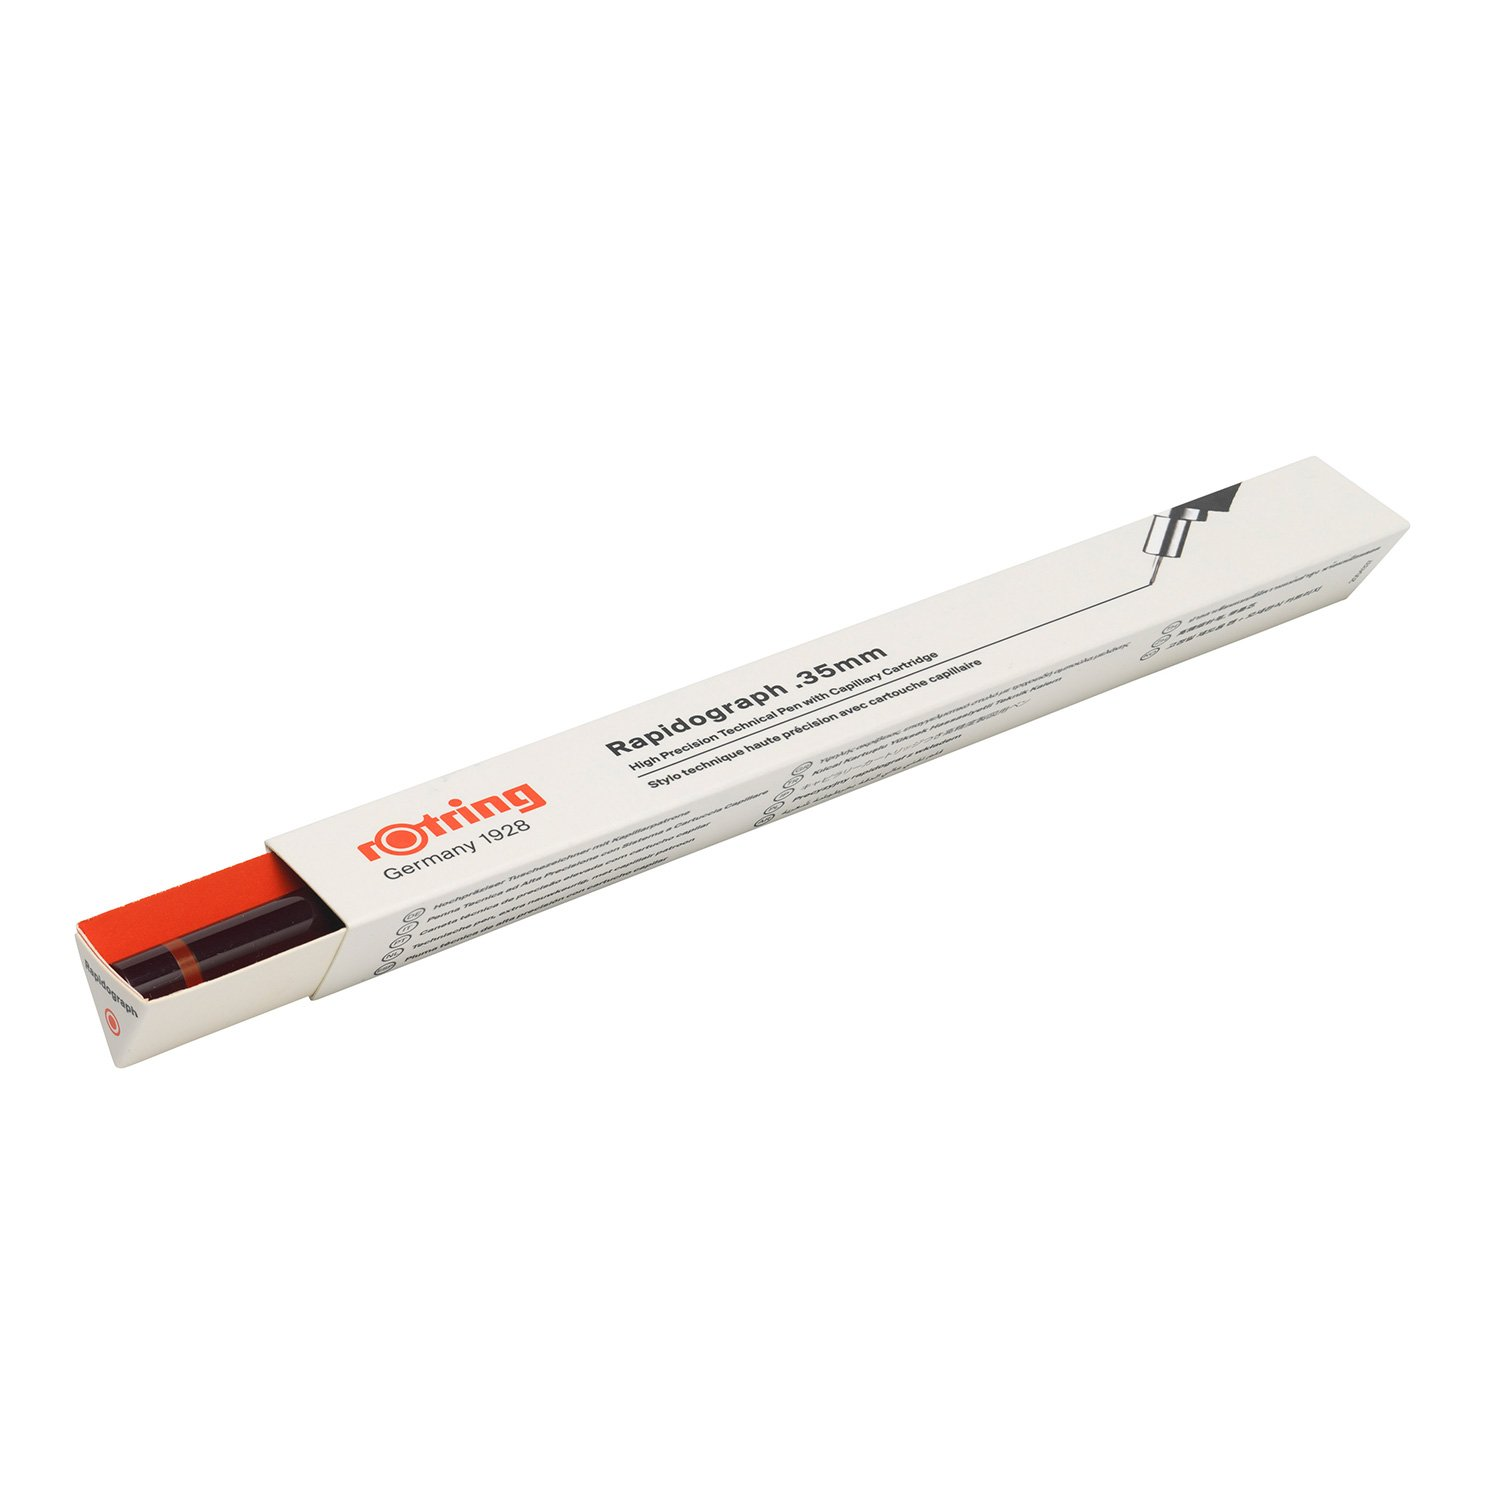 Rotring Rapidograph 0.35mm Technical Drawing Pen (S0194290) by Rotring (Image #6)